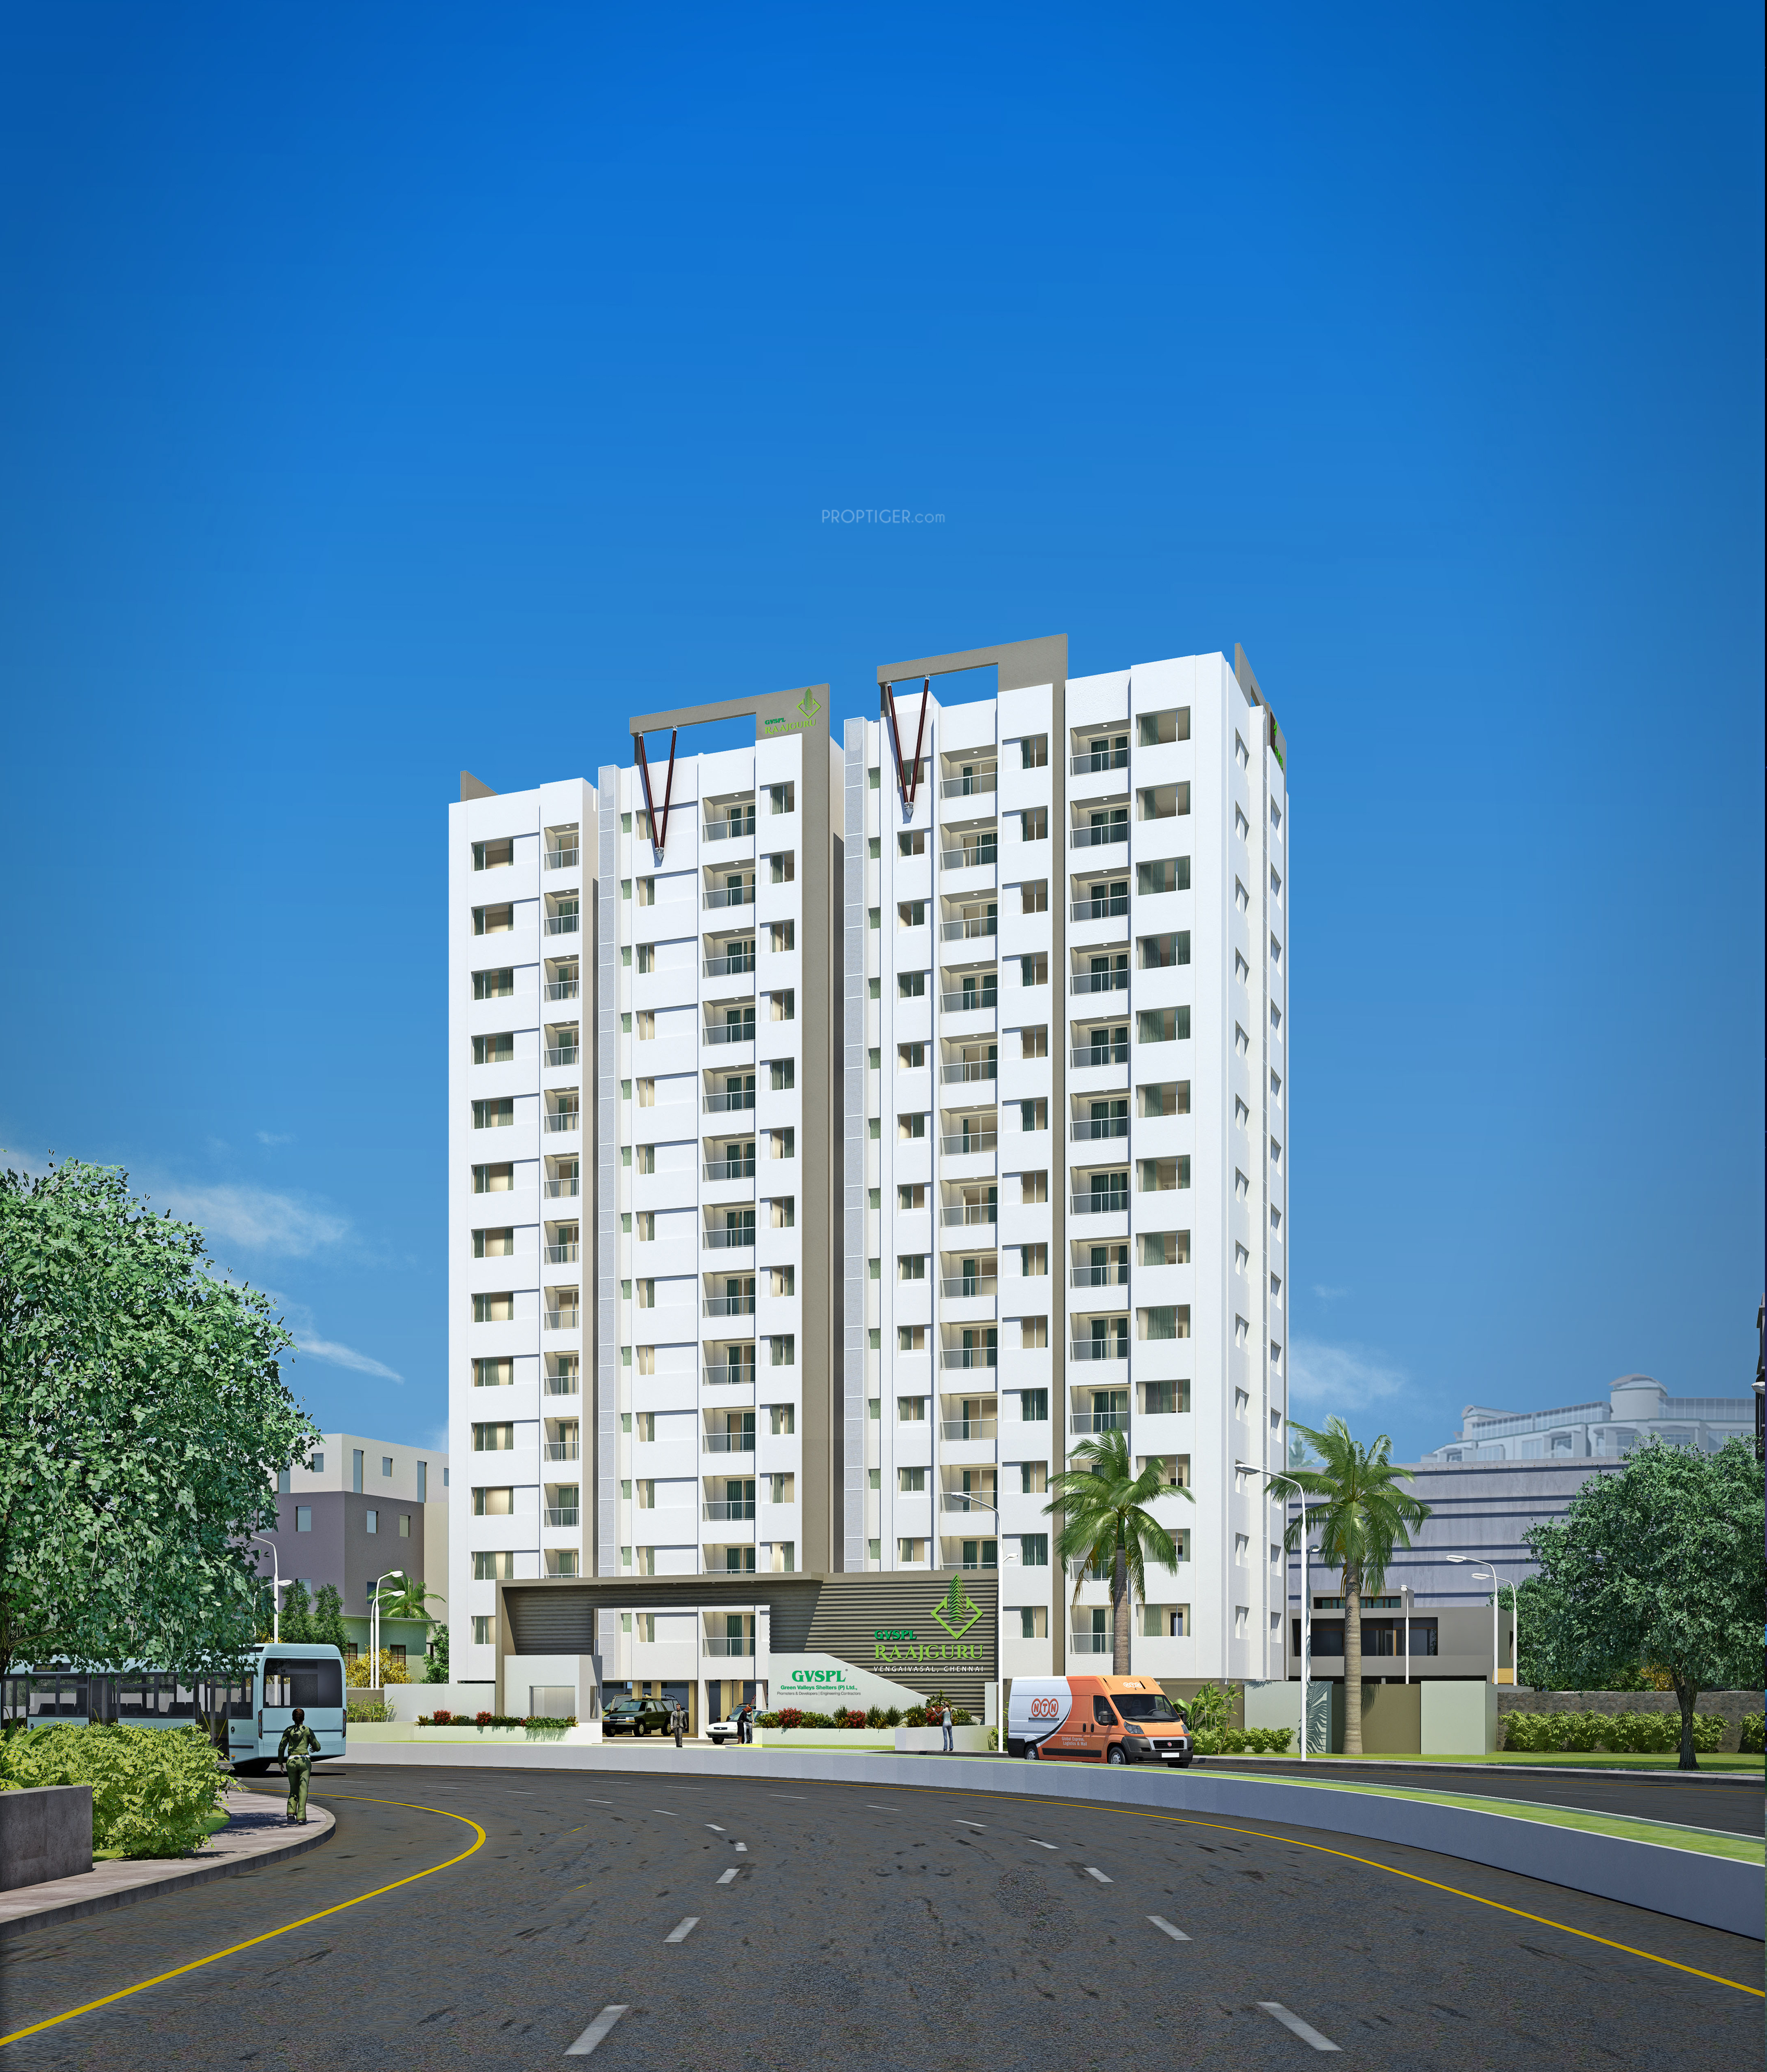 Ags Logistics Pvt Ltd 1284 sq ft 3 bhk 3t apartment for sale in green valleys